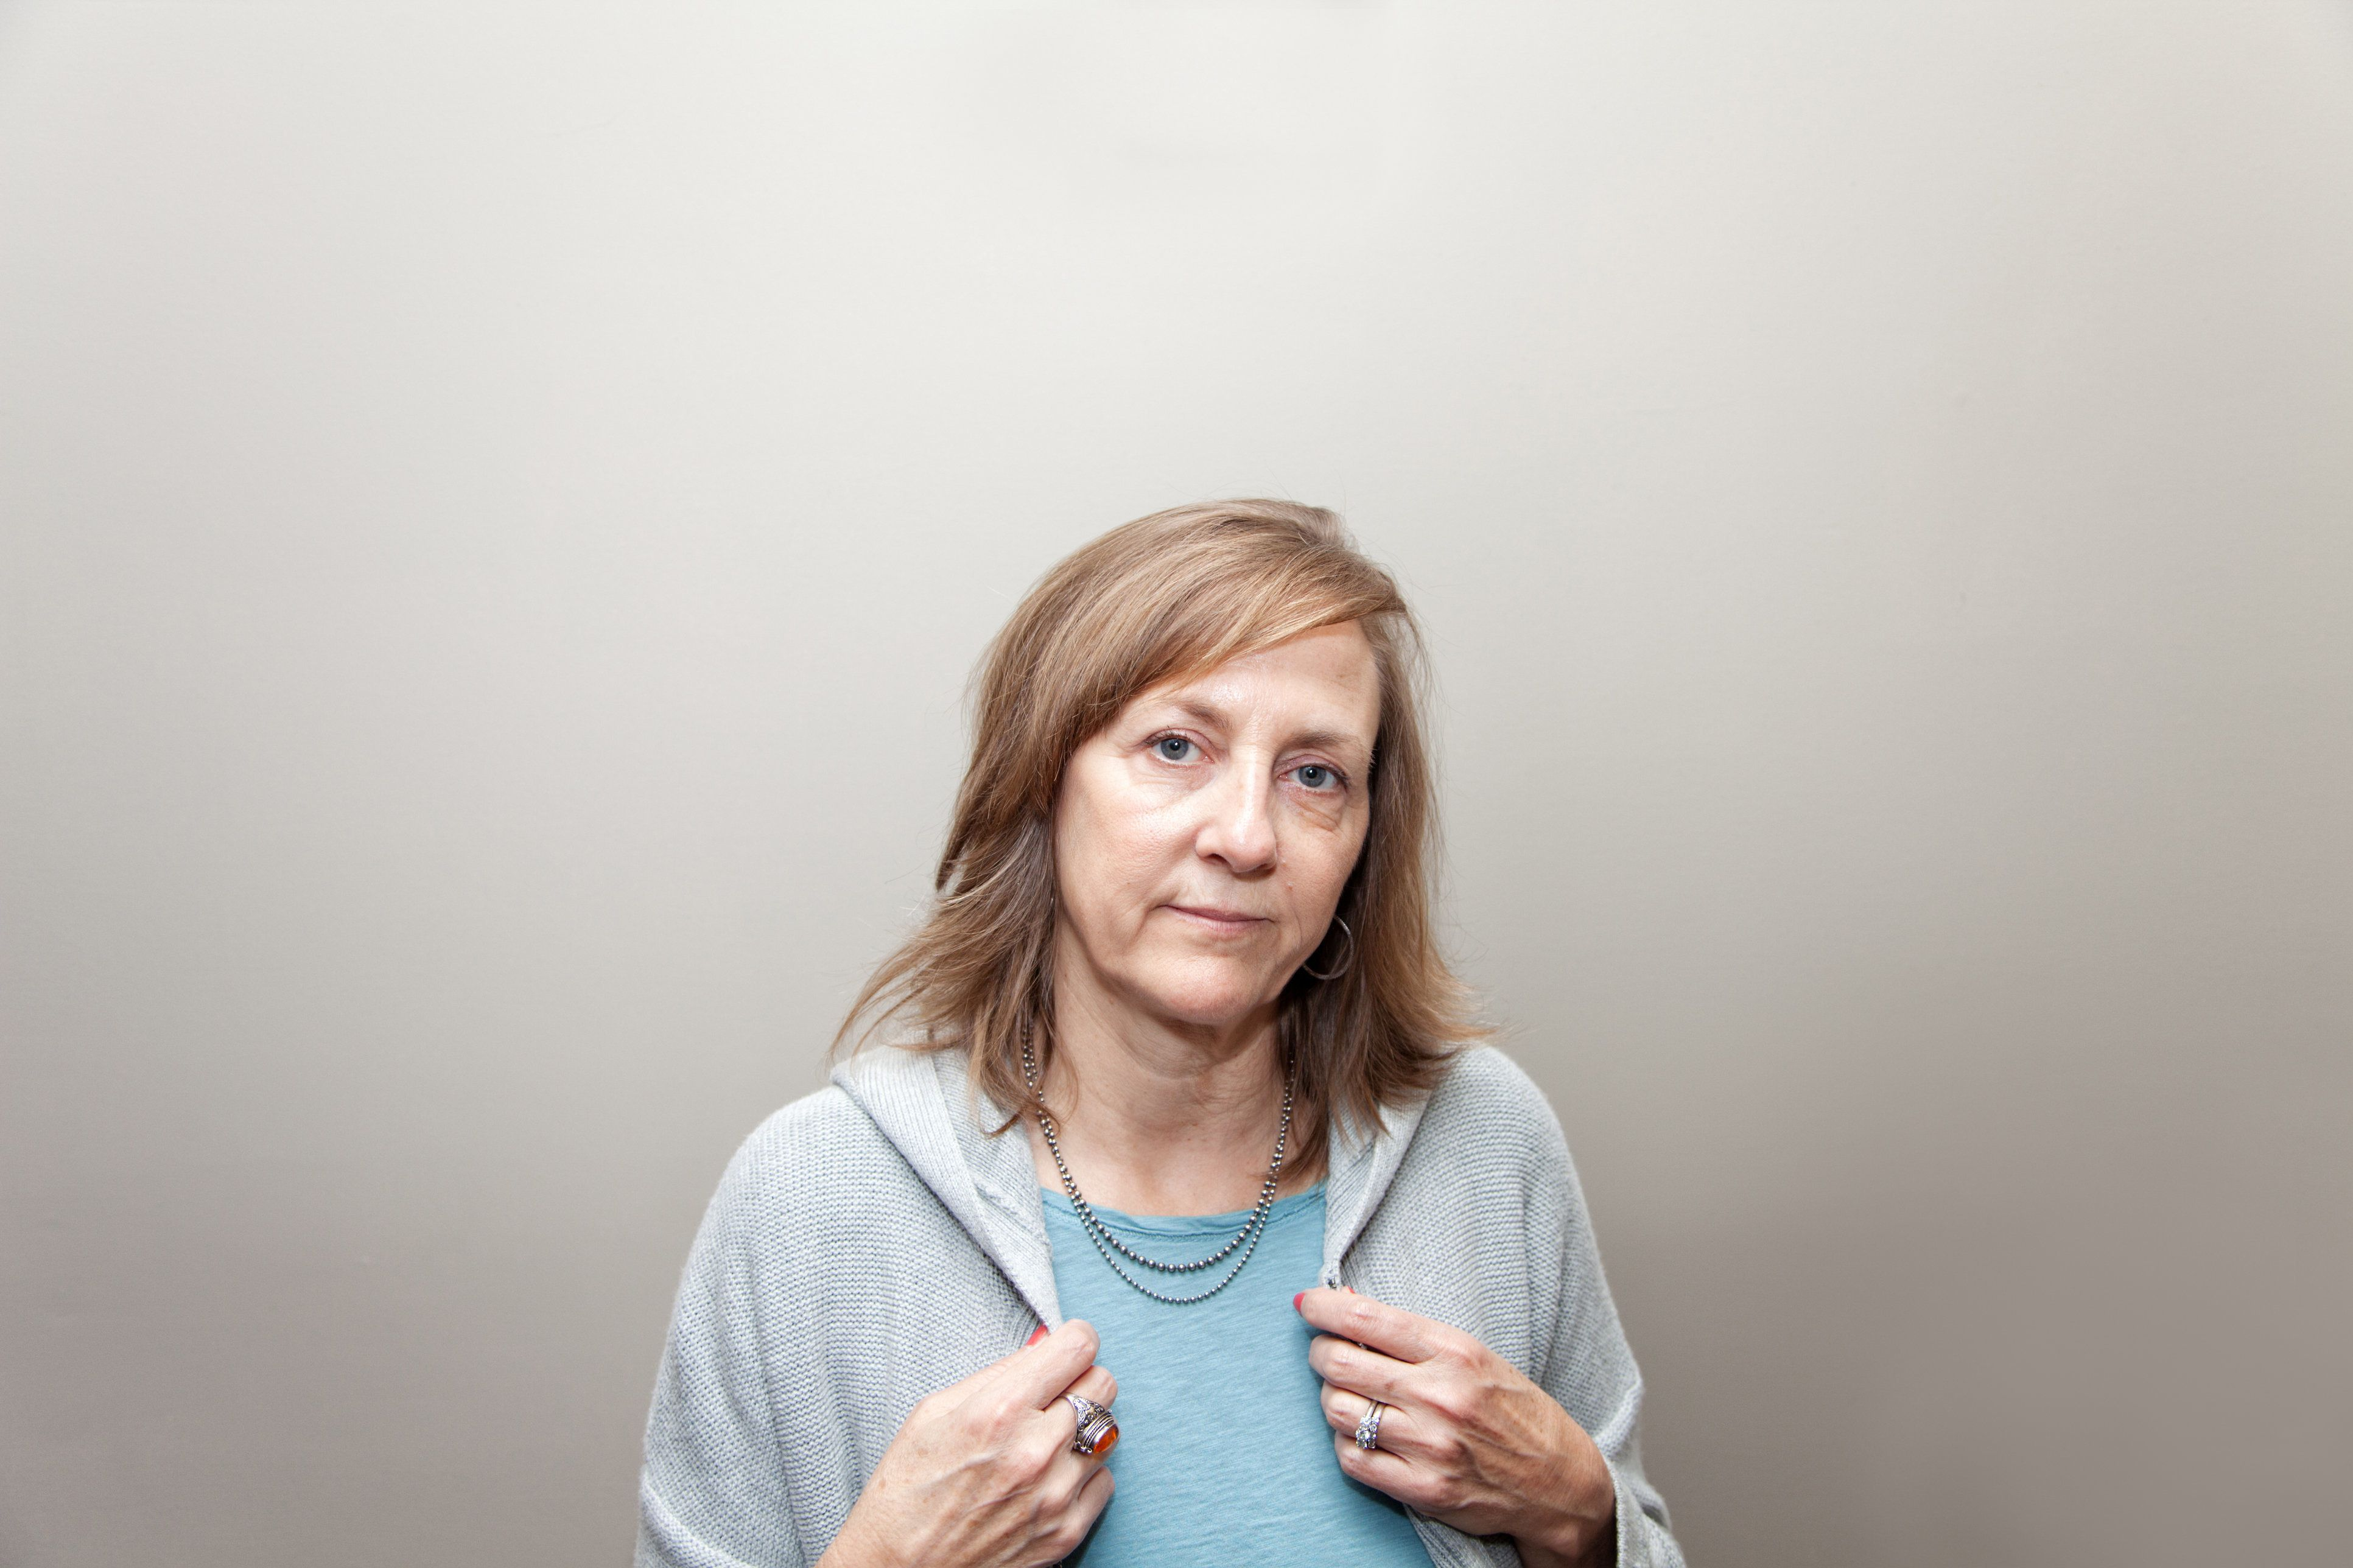 Mature female looking directly at camera, neutral expression, with hands visible; no makeup on 55 year old female with signs of aging